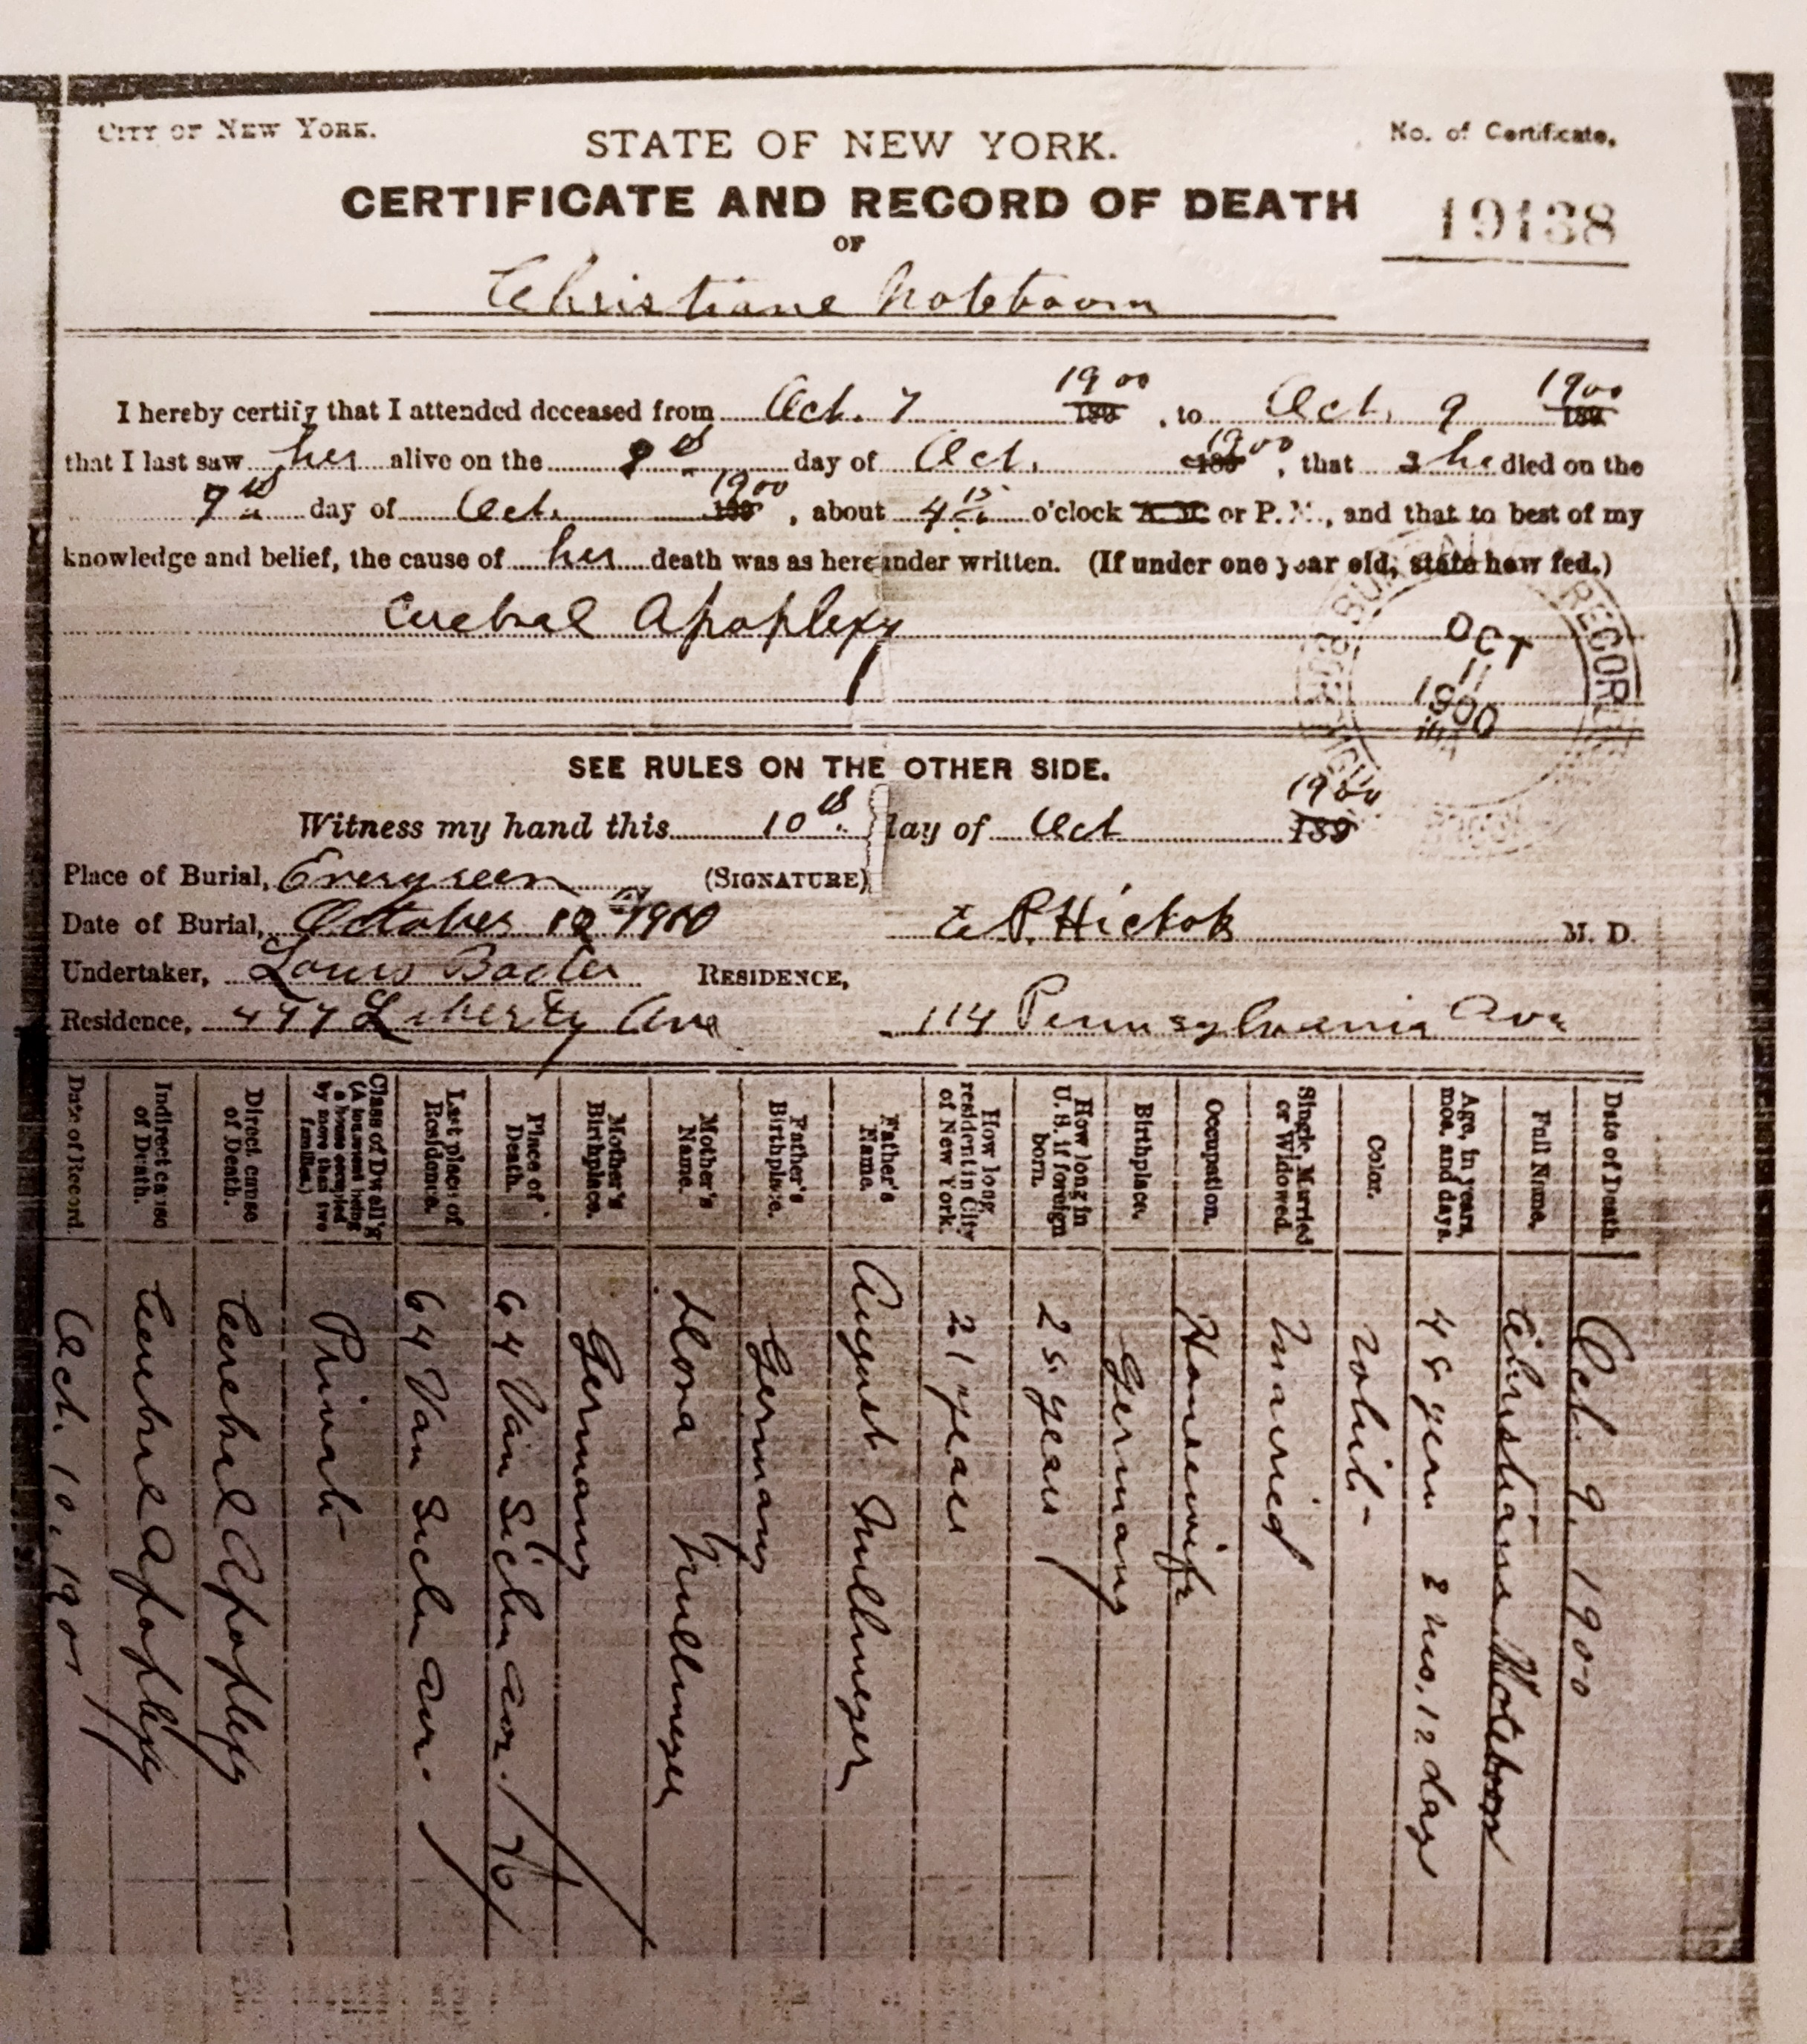 Death Certificates For Walter And Christiane Noteboom